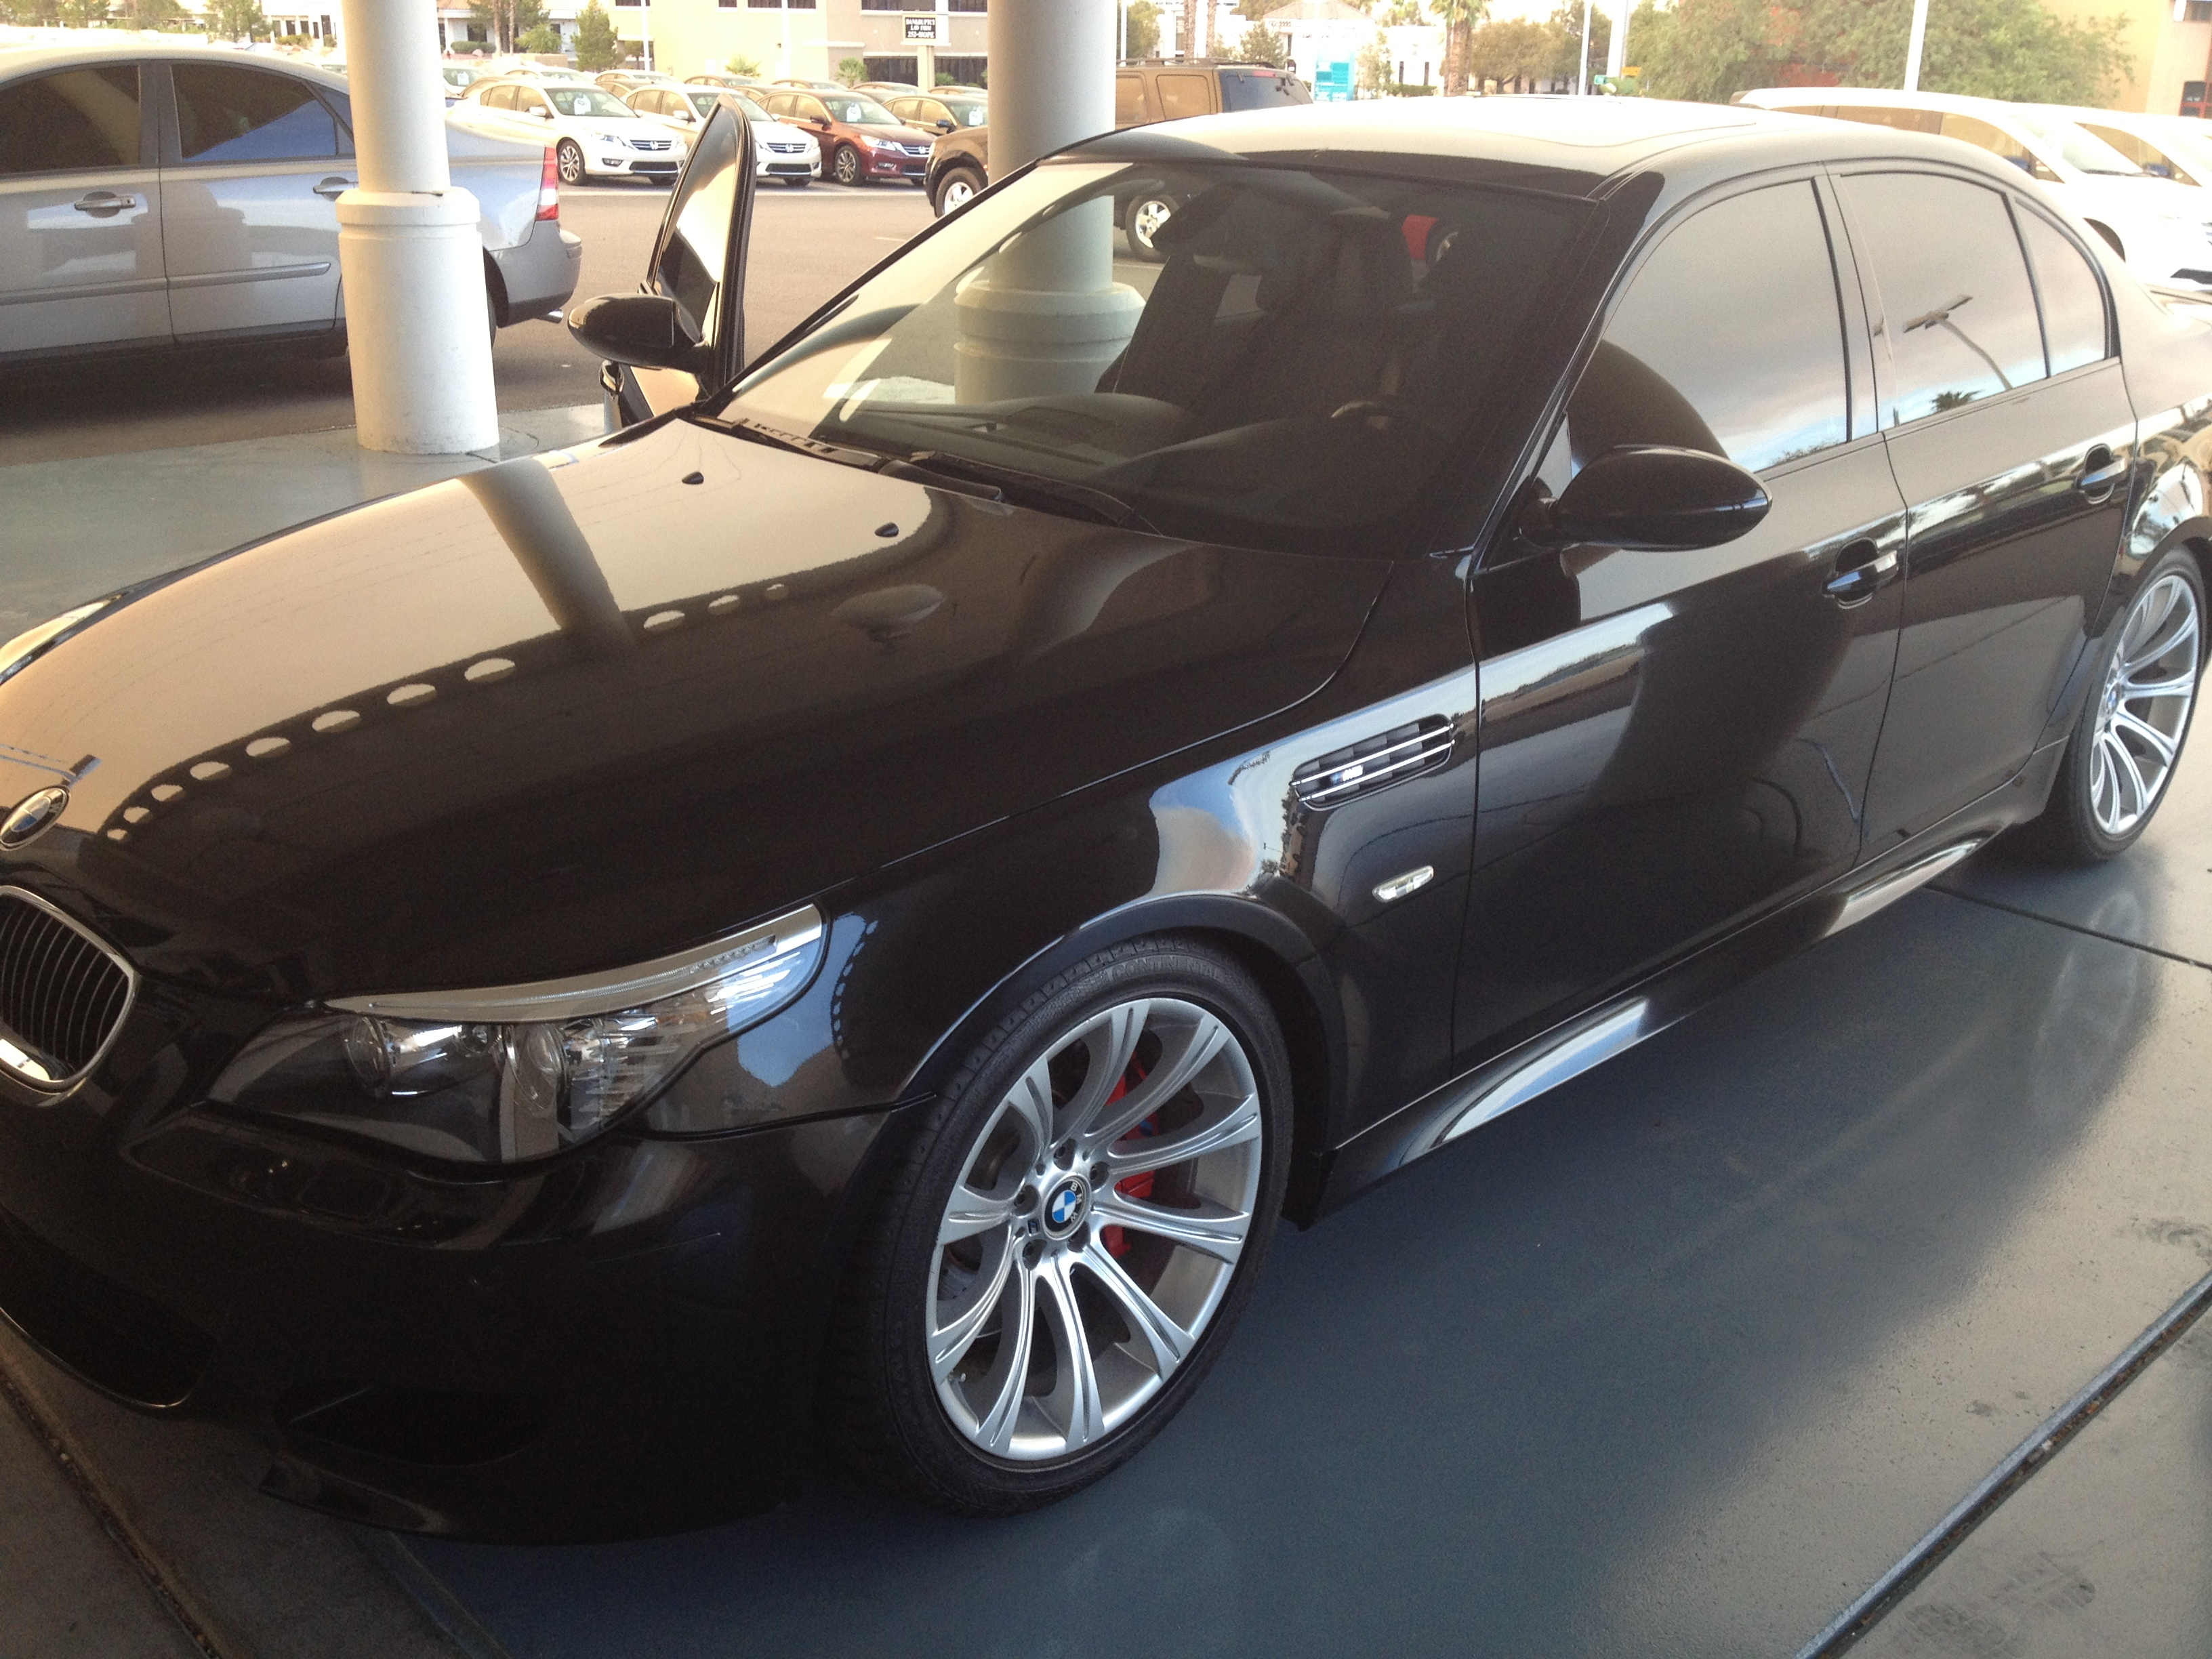 2008 E60 M5 MPG Issue - BMW M5 Forum and M6 Forums